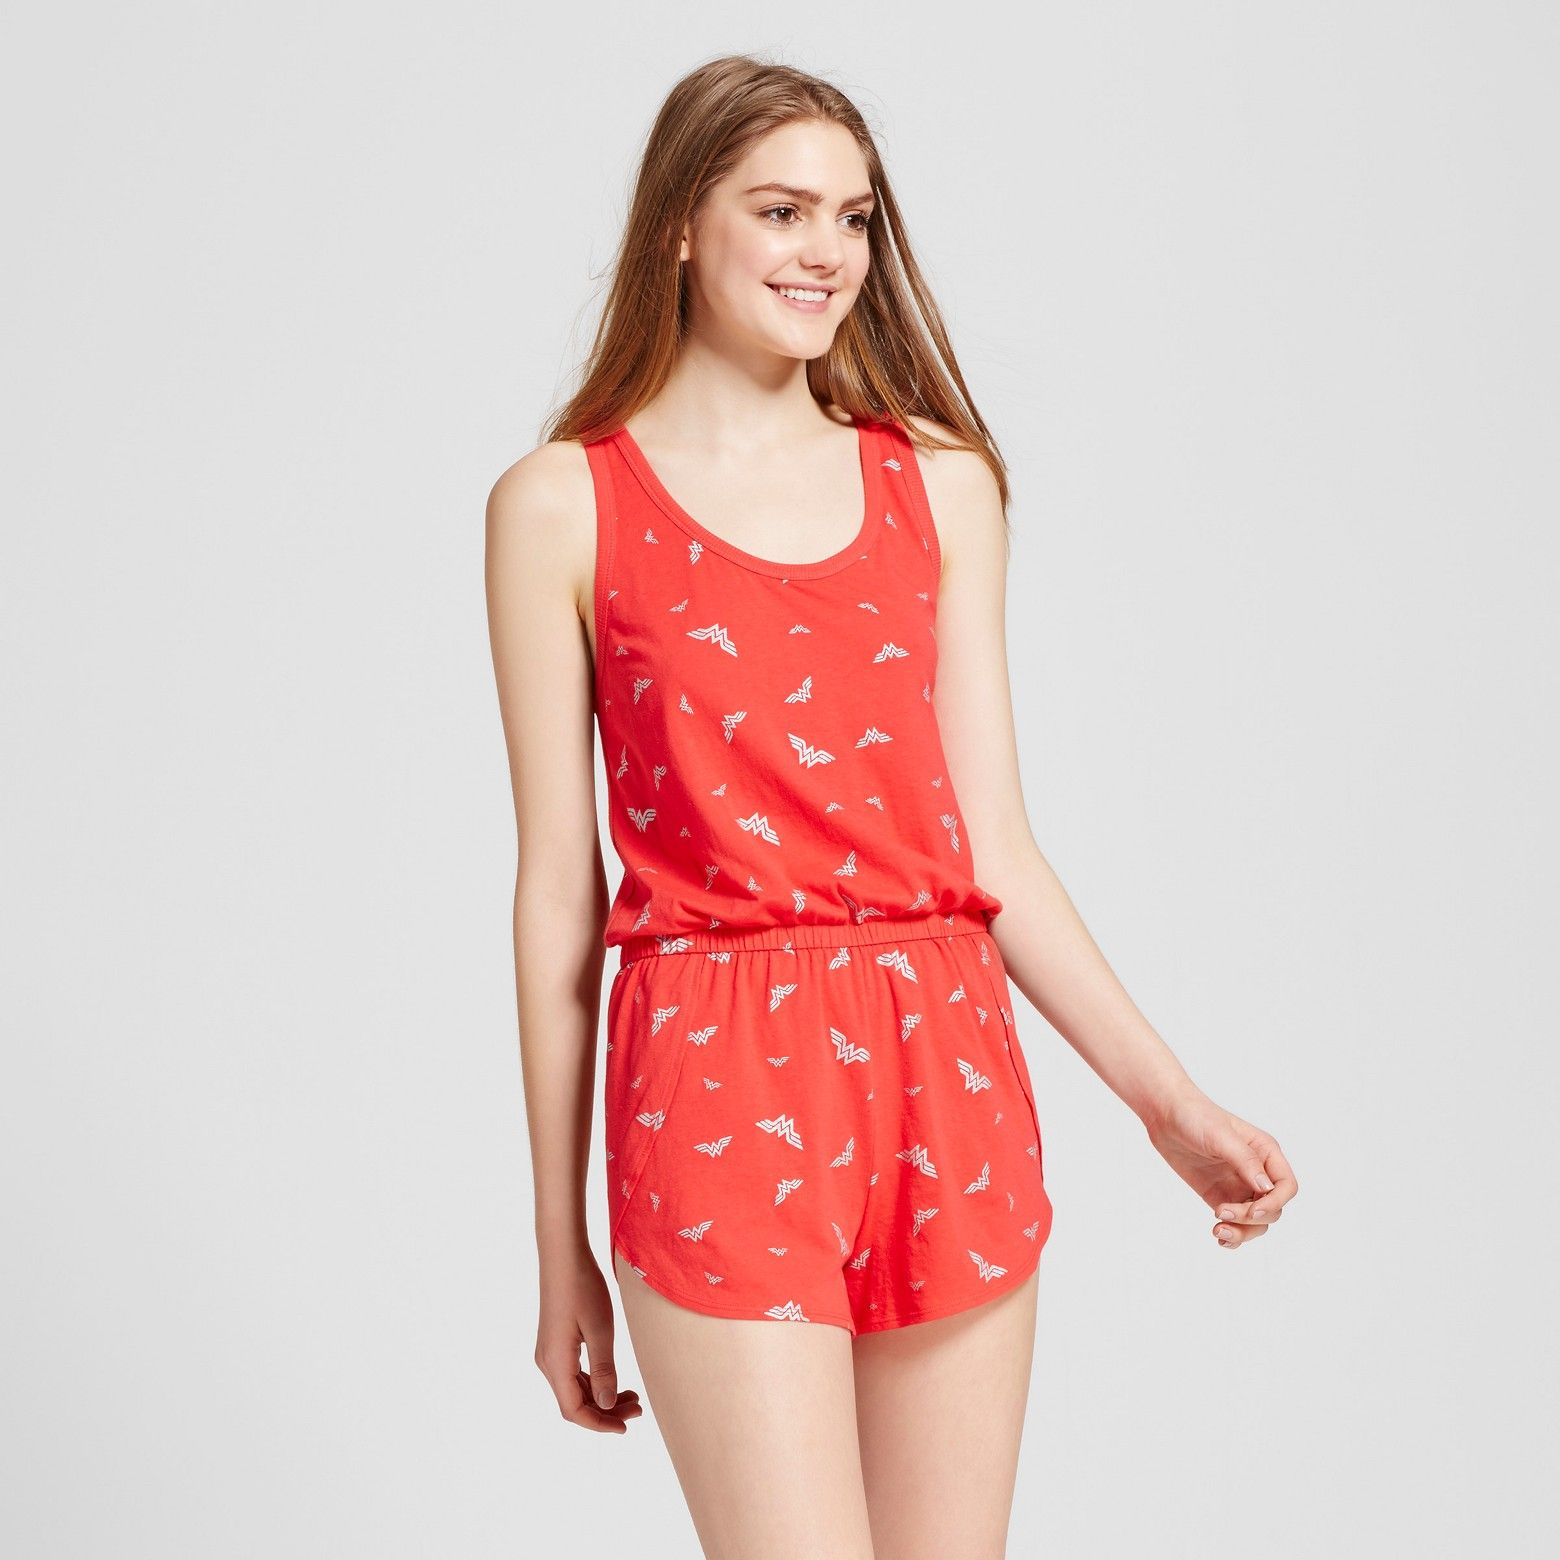 Fashion style Stylish cute rompers for lady